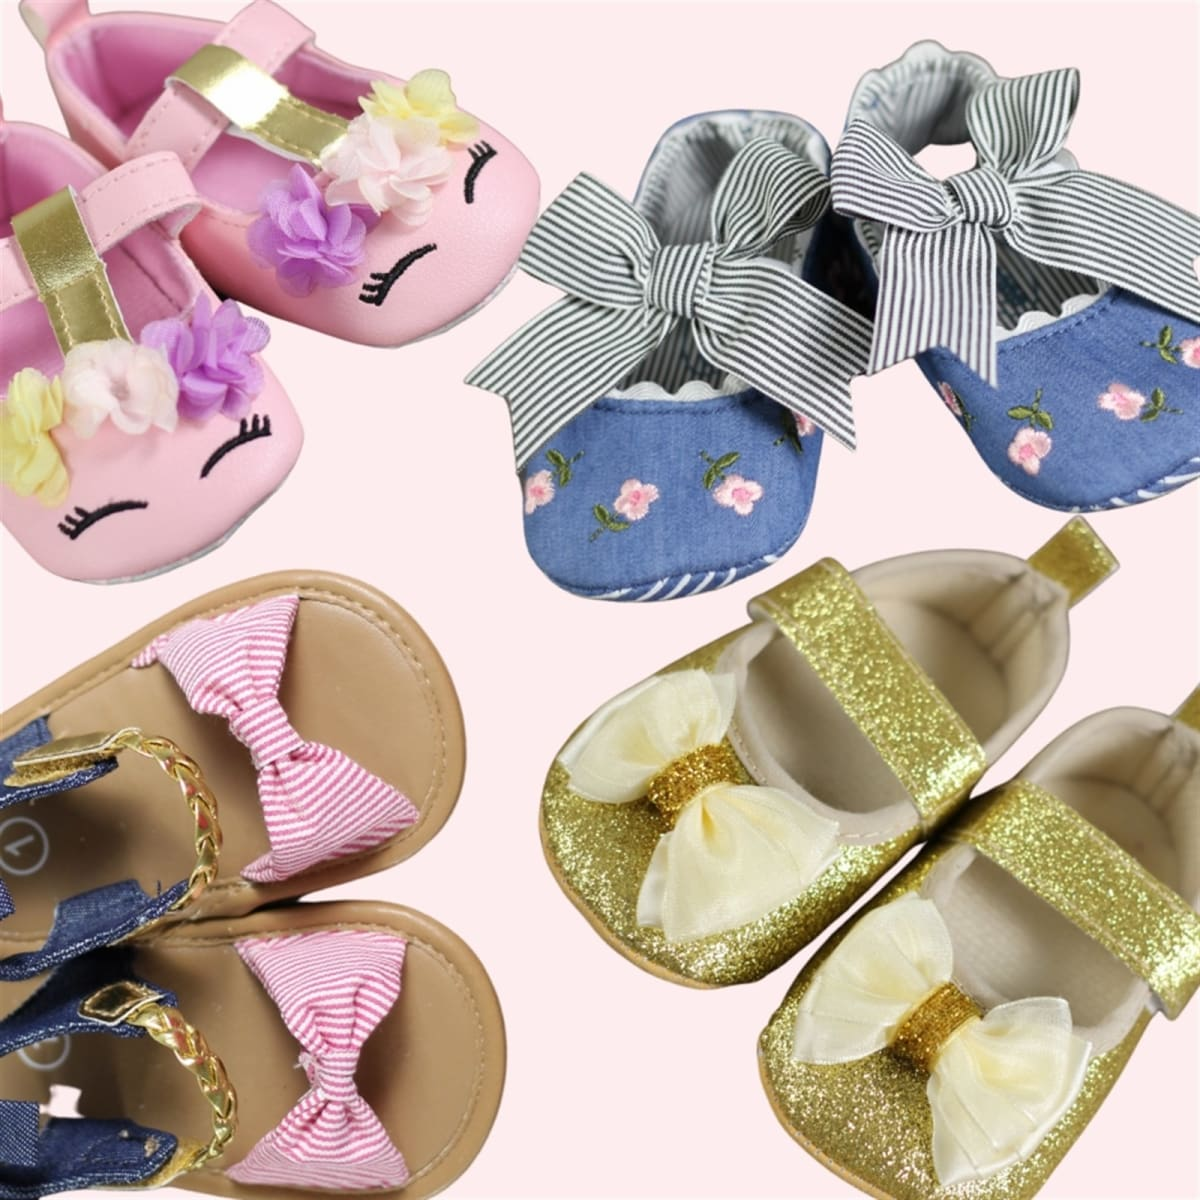 Baby and Toddler Shoes- HOW DARN CUTE?! 45% OFF!